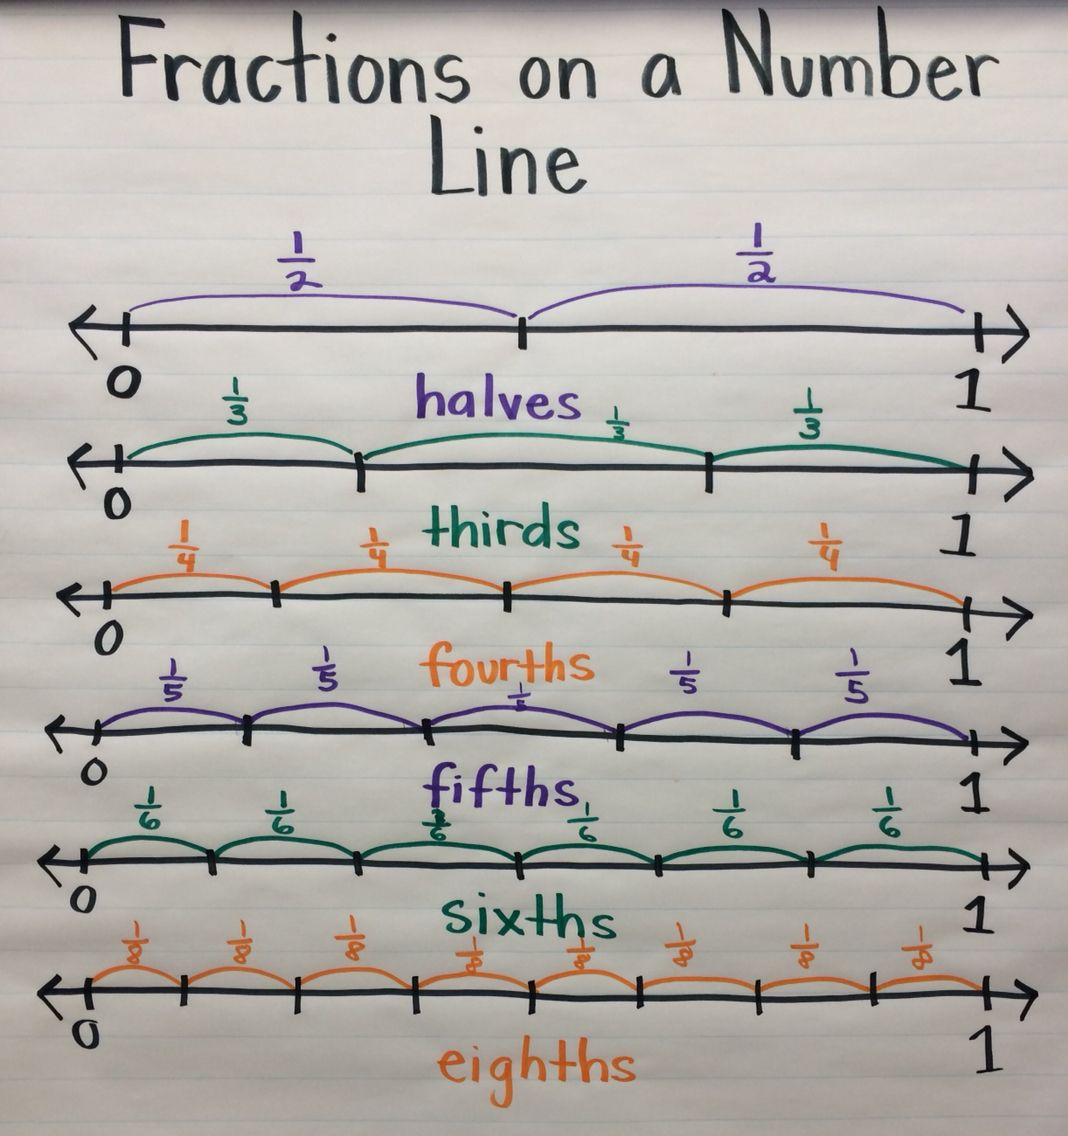 Drawing Number Lines With Fractions : Images about number lines on pinterest